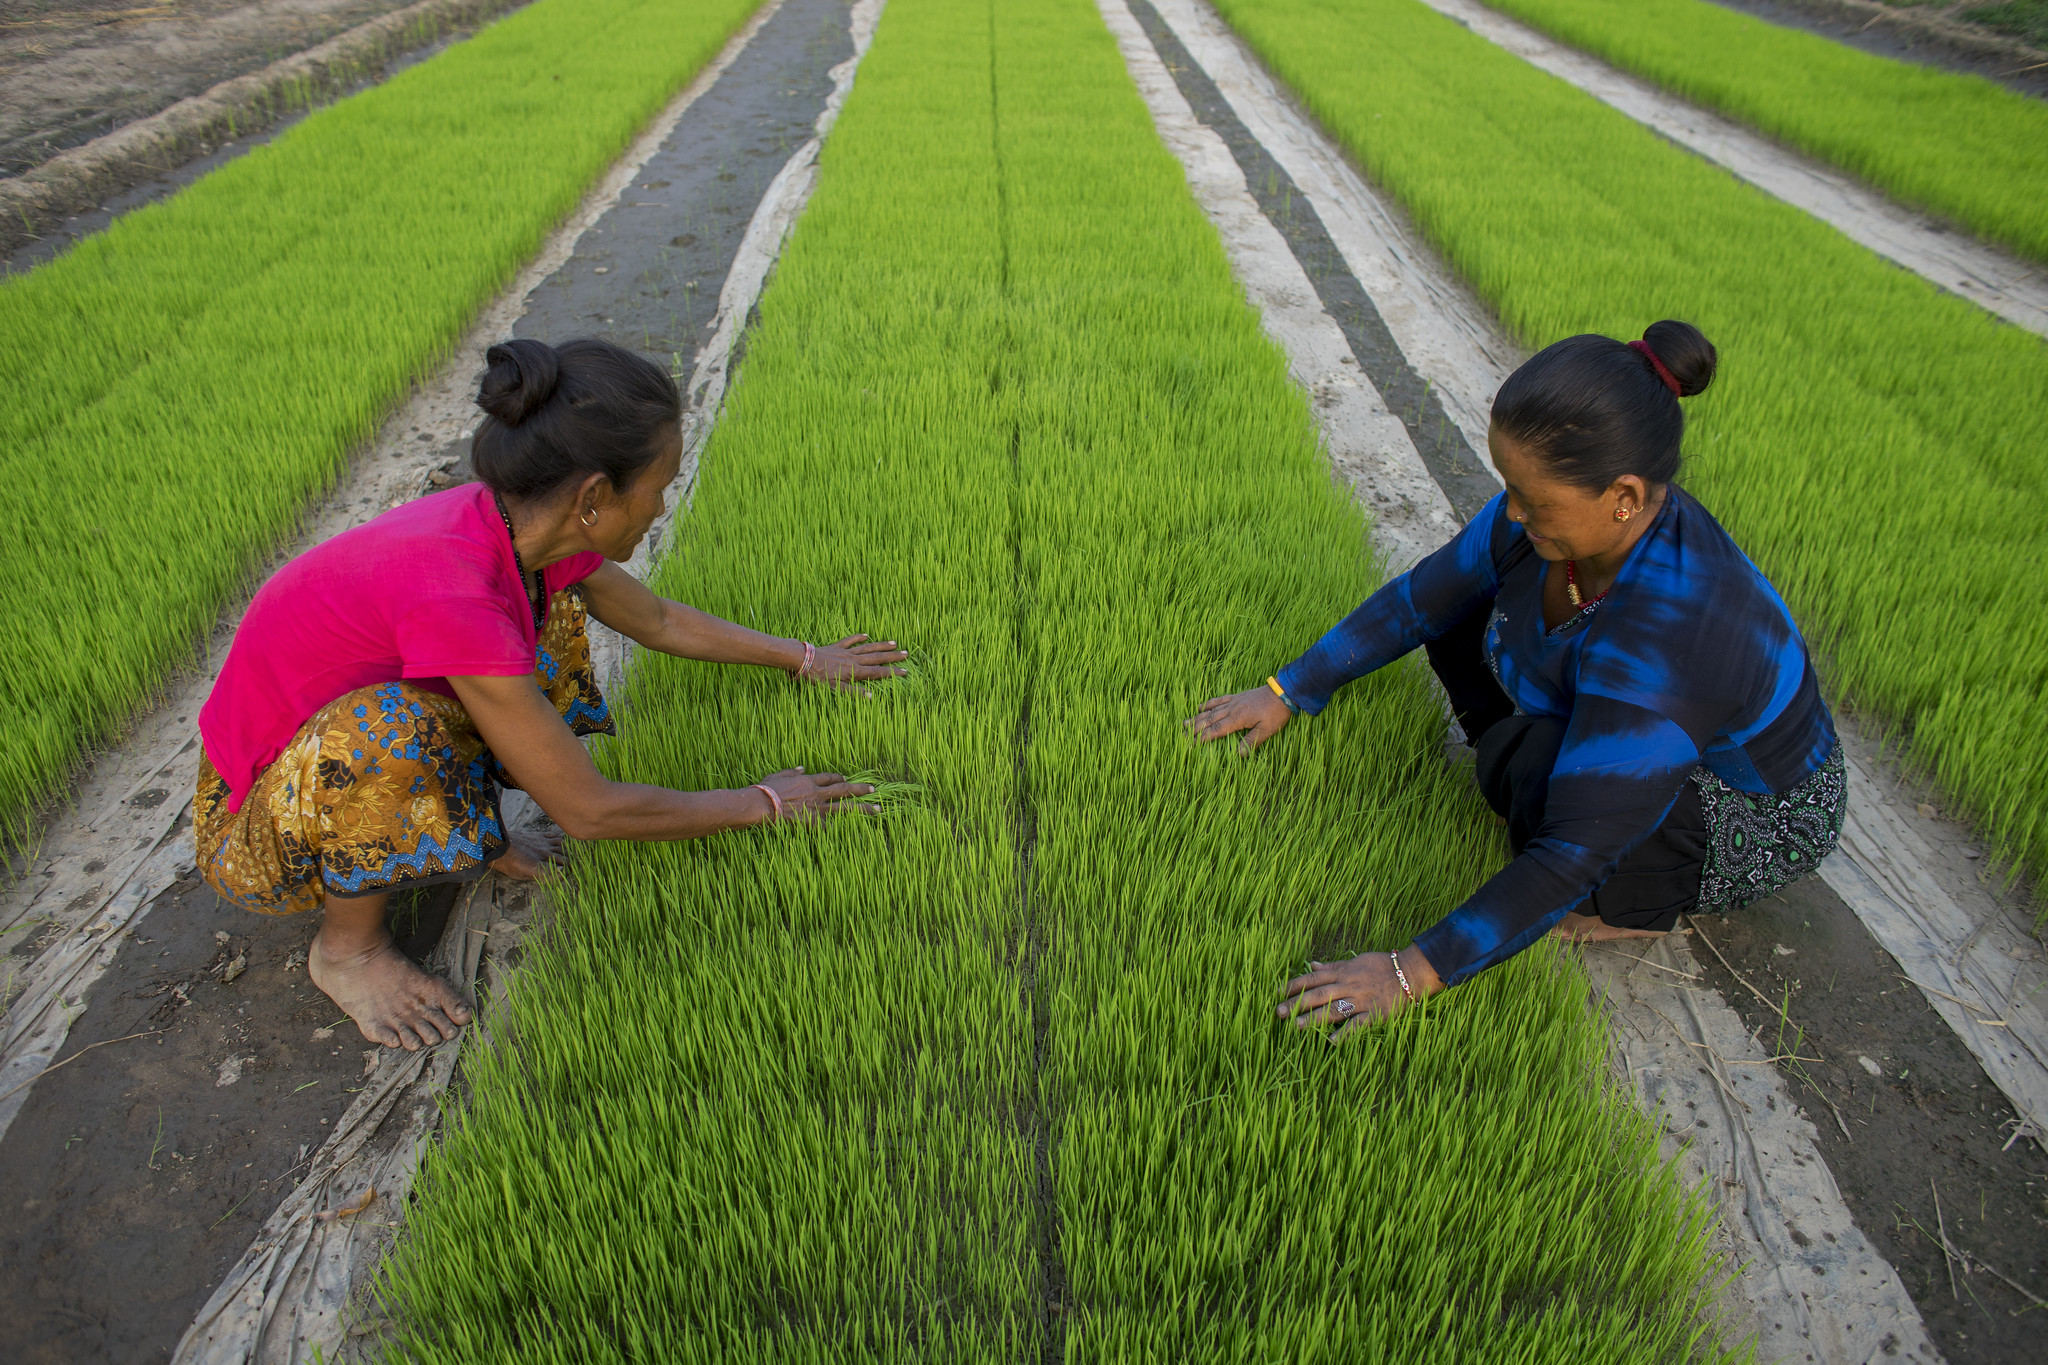 Farmers Kanchimaya Pakhrin and her neighbor Phulmaya Lobshan weed rice seedling bed sown by machine in Purnabas, Kanchanpur, Nepal. (Photo: P. Lowe/CIMMYT)